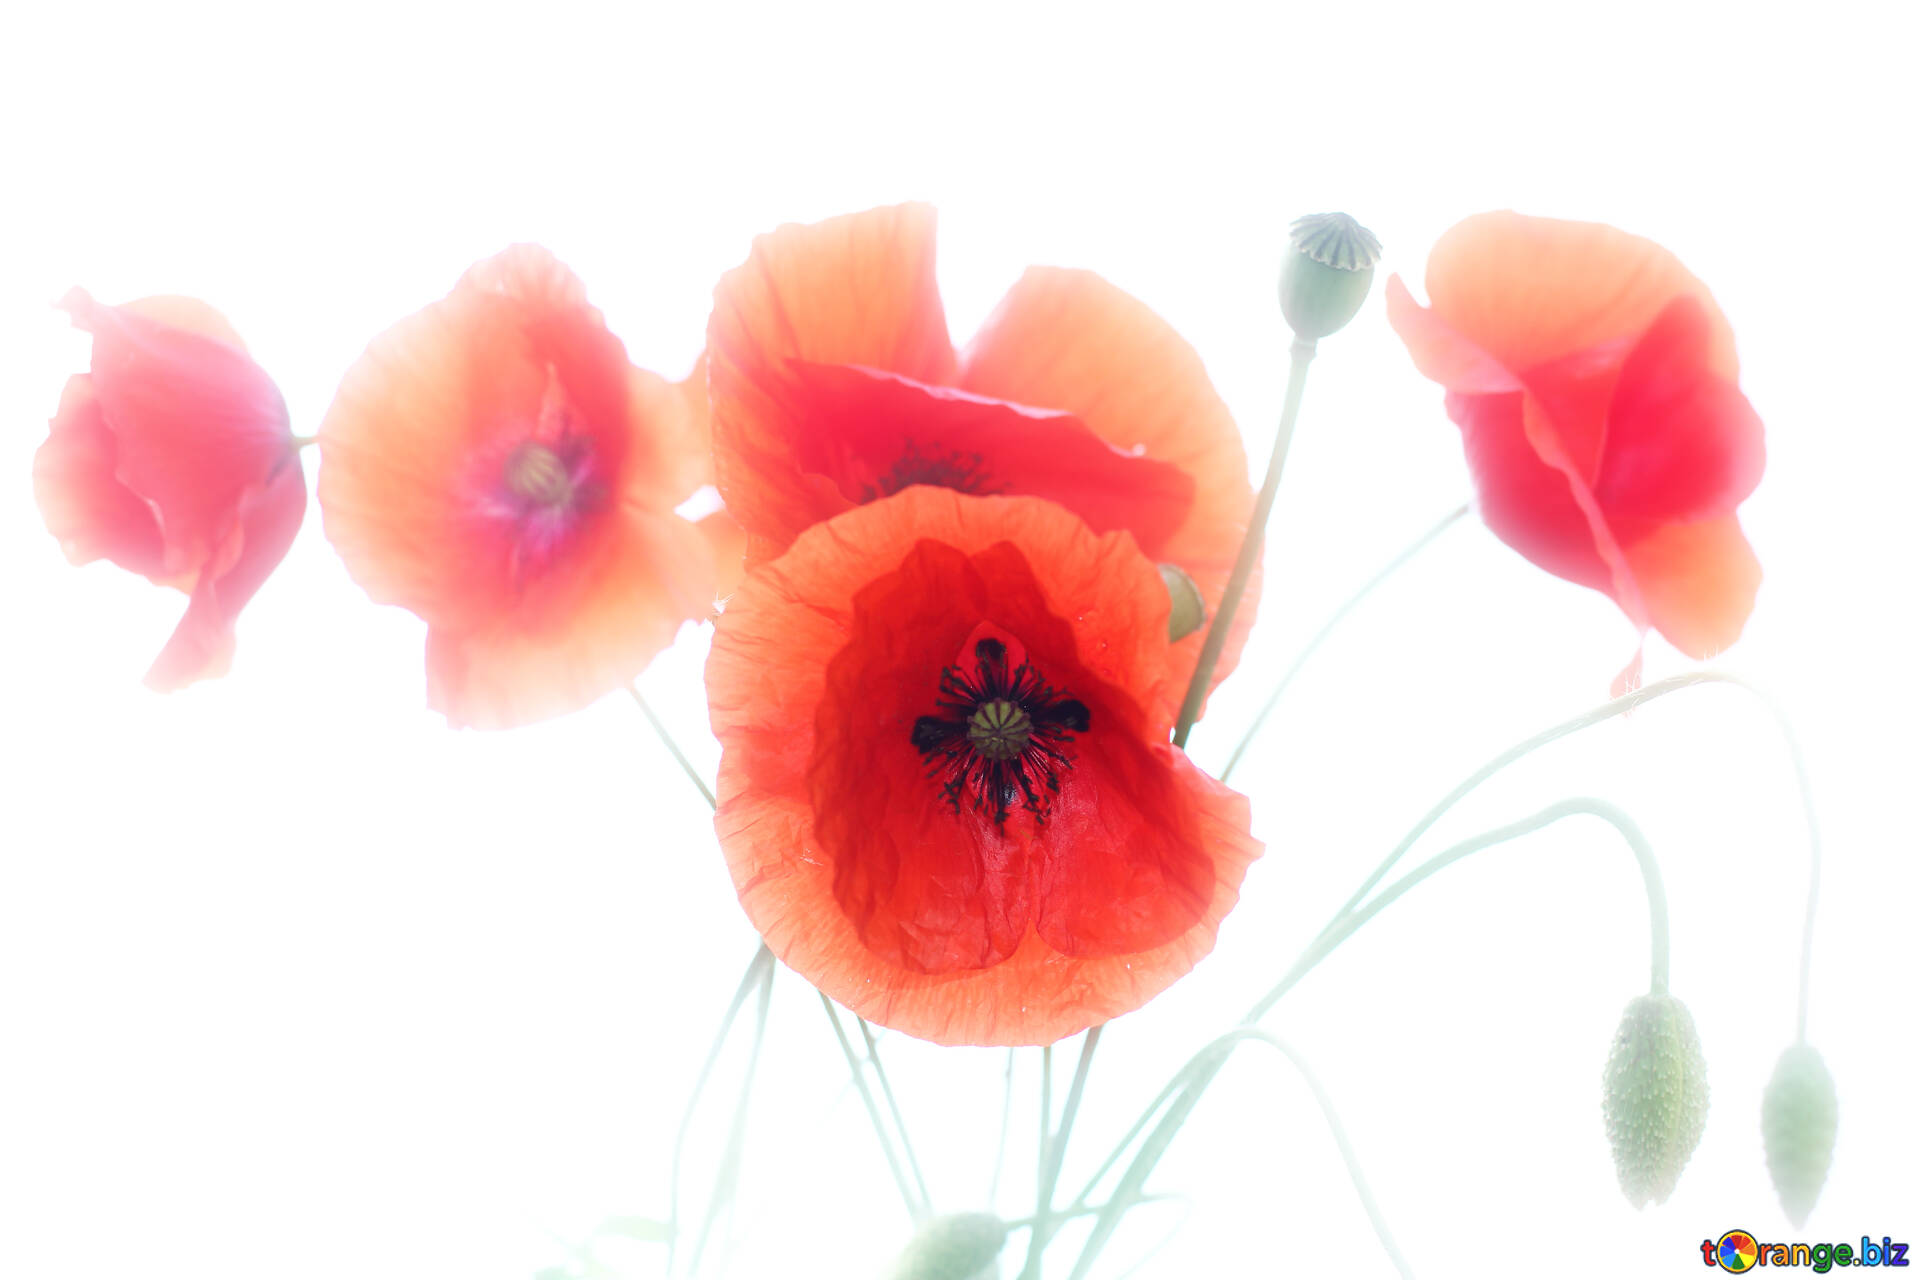 Flowers poppies isolated on a white background flowers of the poppy download free image flowers of the poppy on white background in hd wallpaper size 1920px mightylinksfo